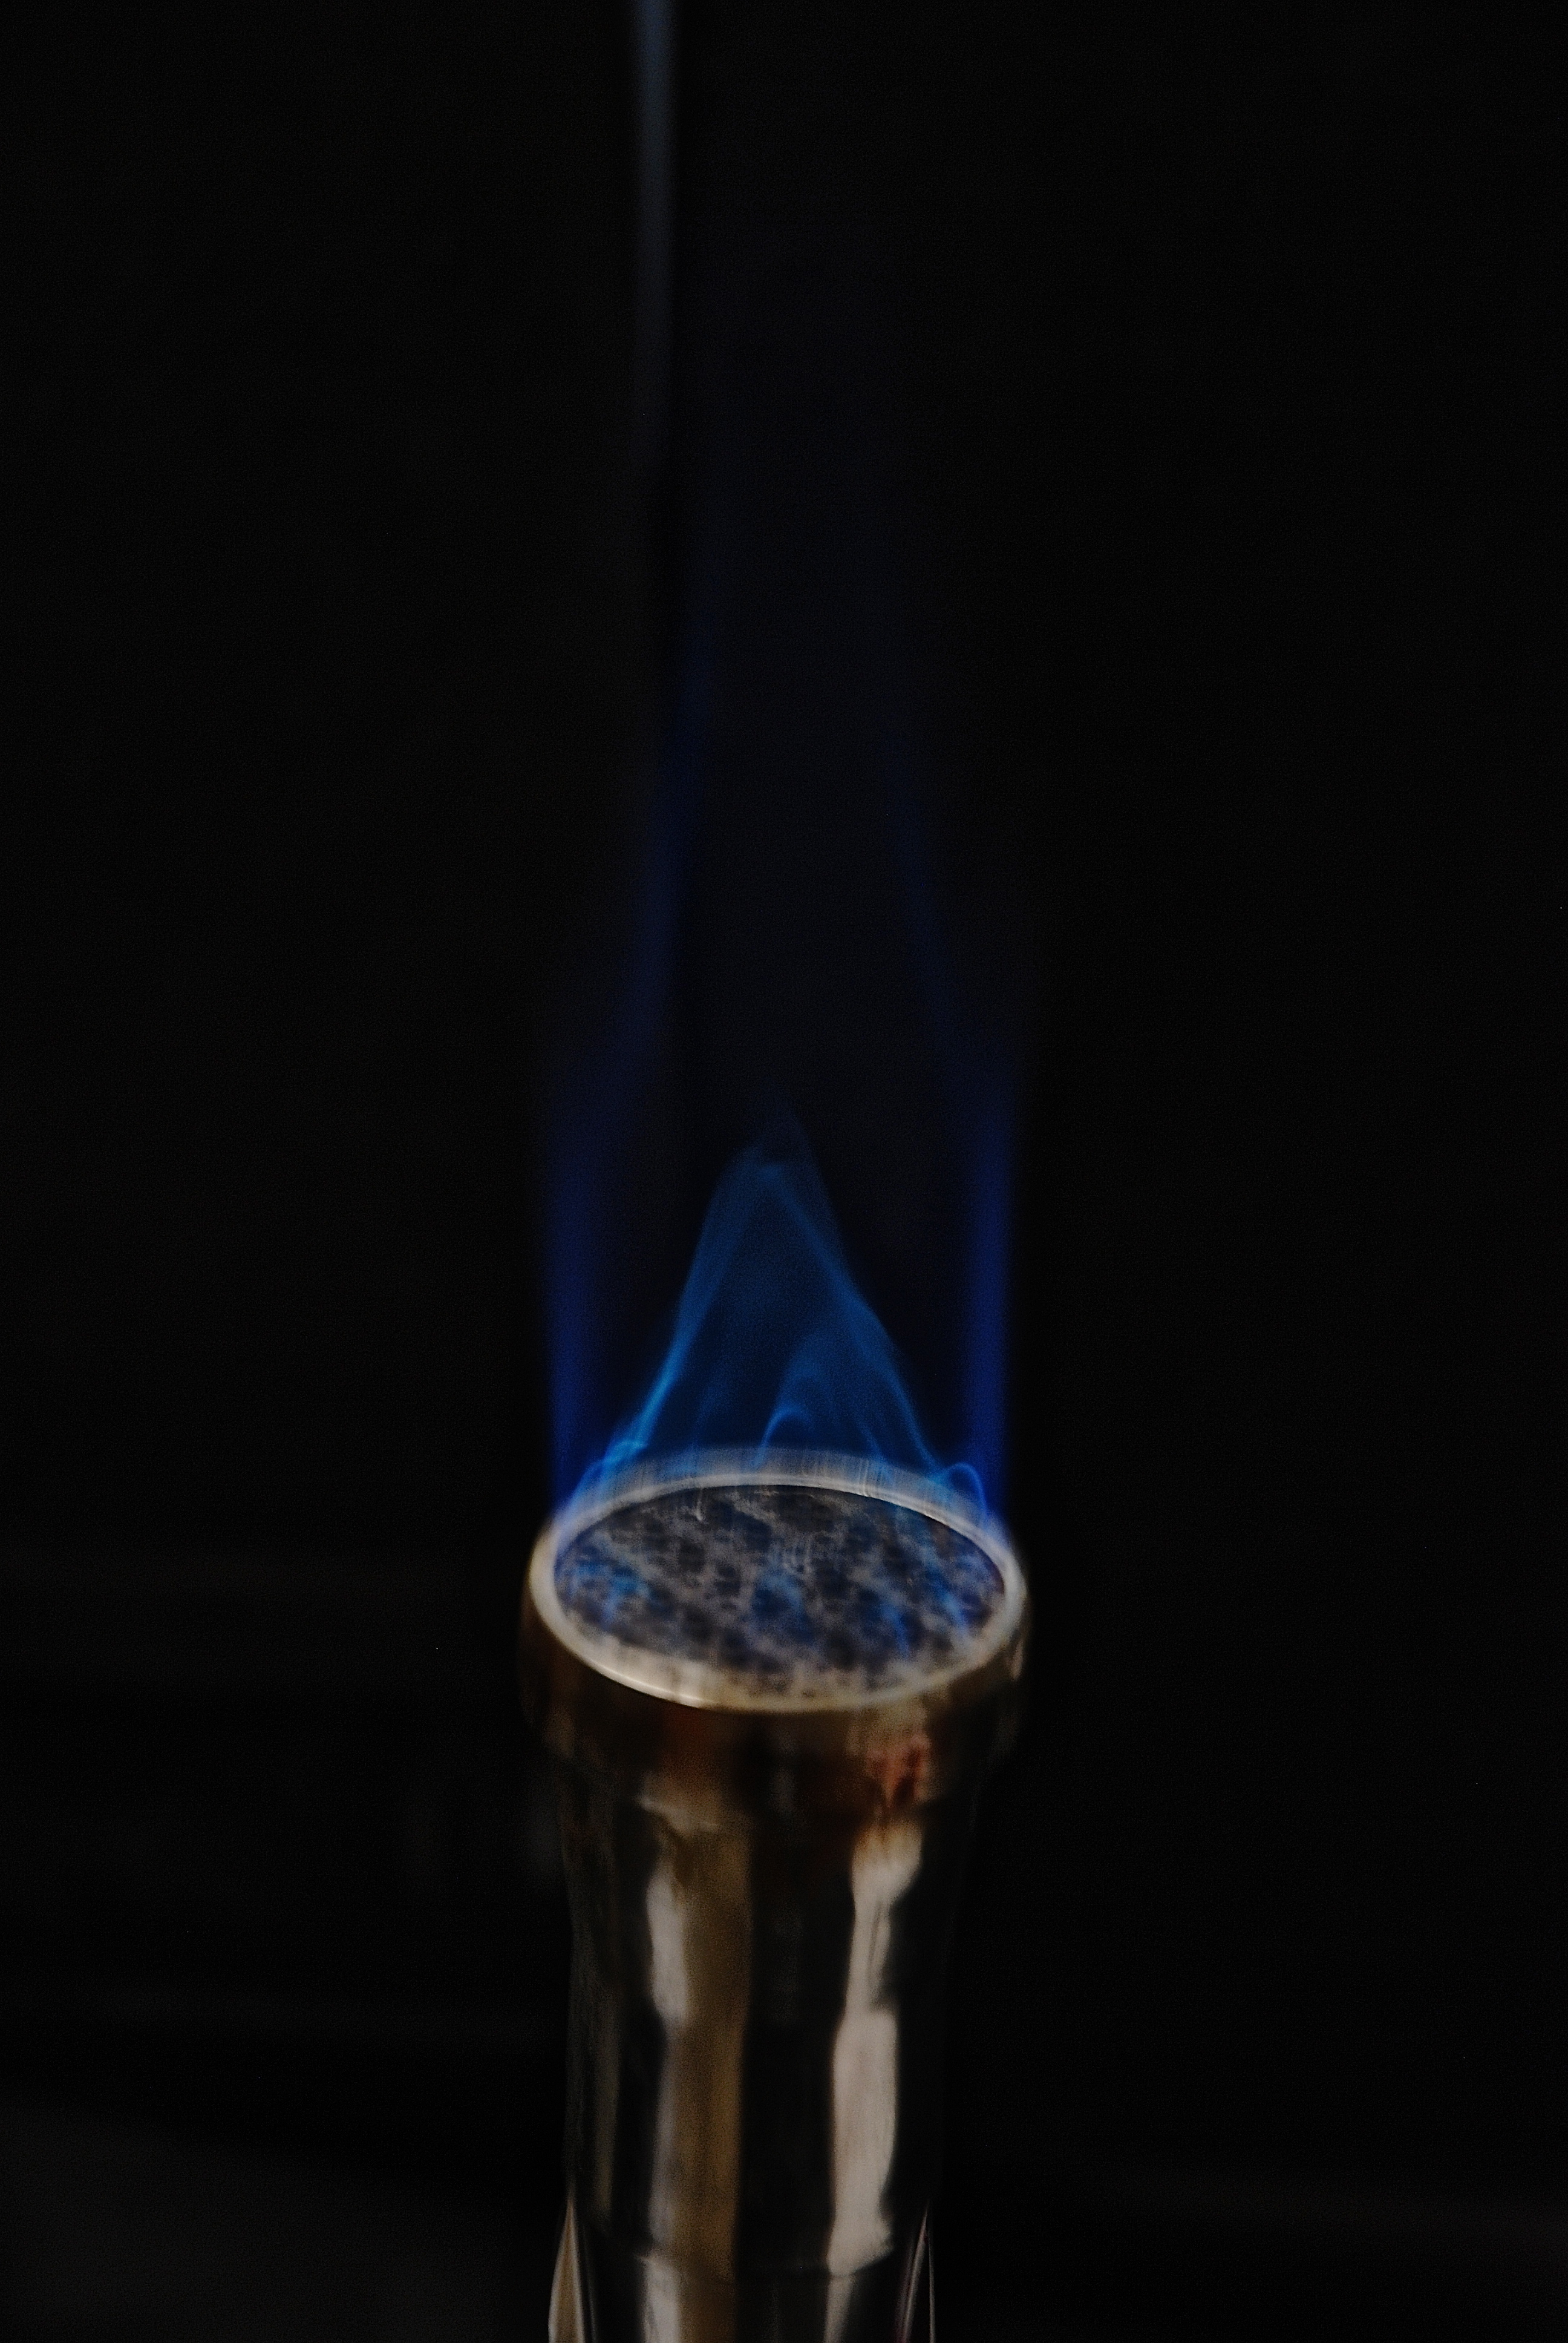 The heat from the Bunsen burner keeps germs from contaminating the open plates and test tubes being used around it.